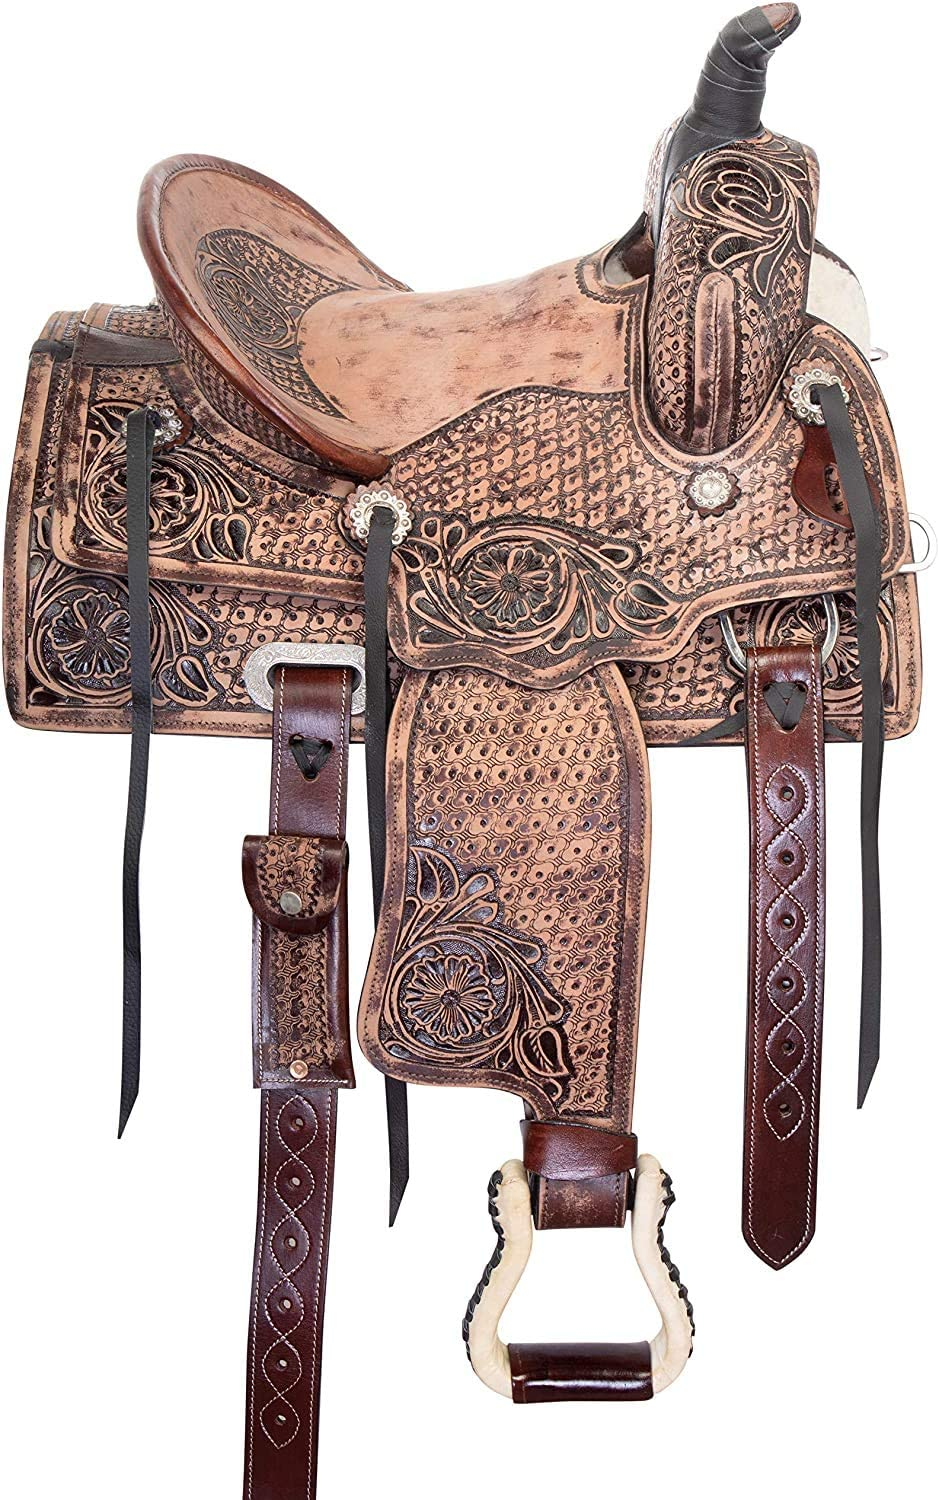 """Star Trading Company Little Cowboy Western Roping Leather Horse Saddle Youth Kids TACK Set 10/"""" 12/"""" 13/"""" 14 15 Inches"""